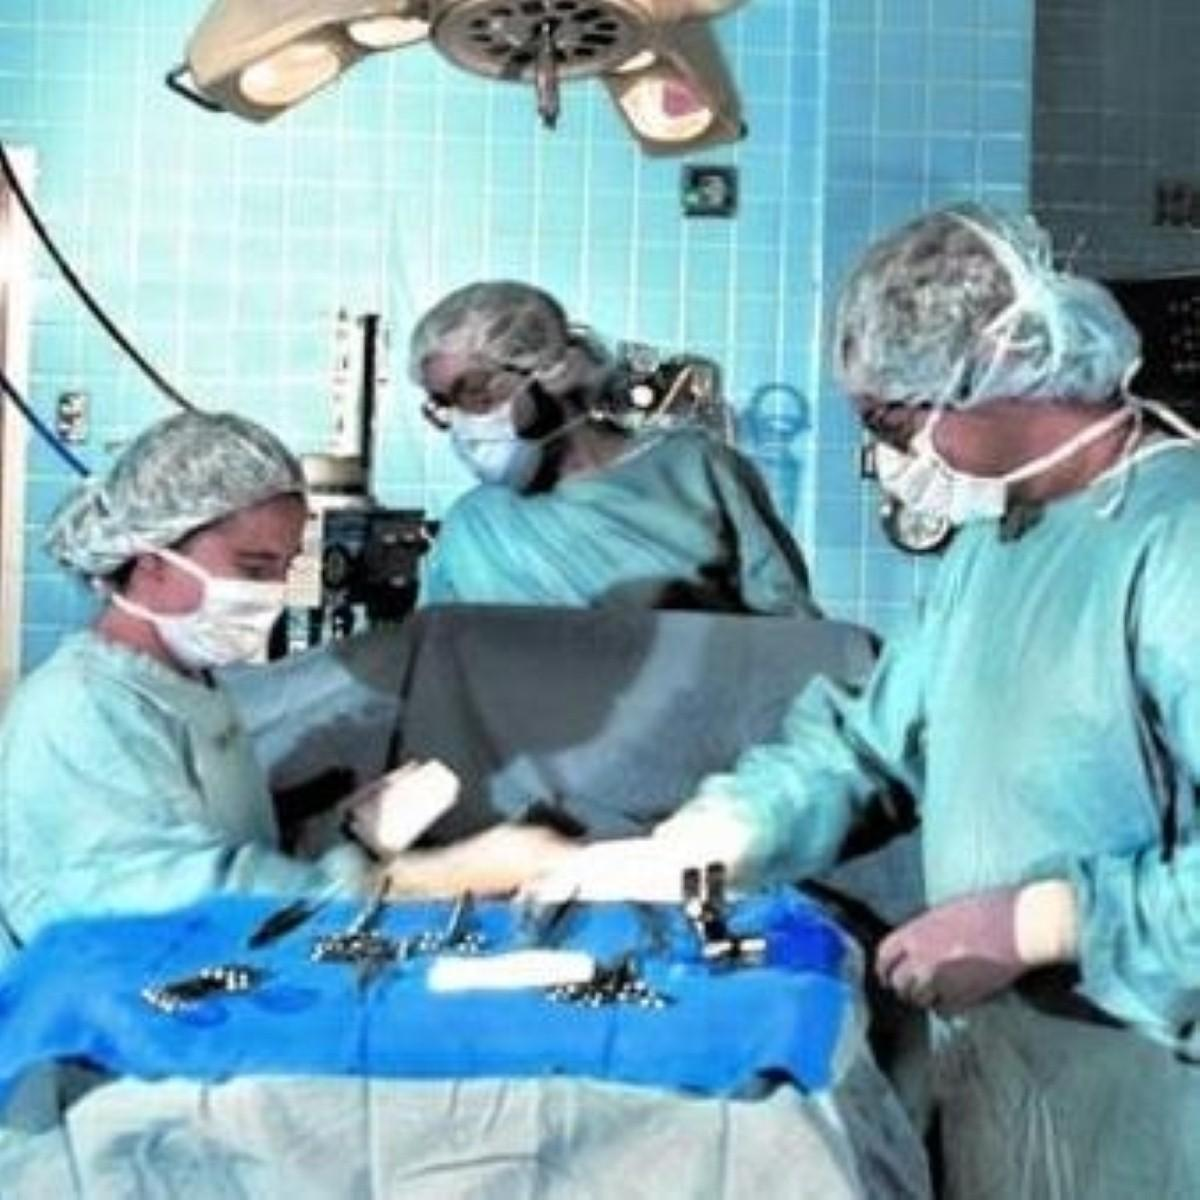 Hip replacement patients 'could leave hospital earlier'